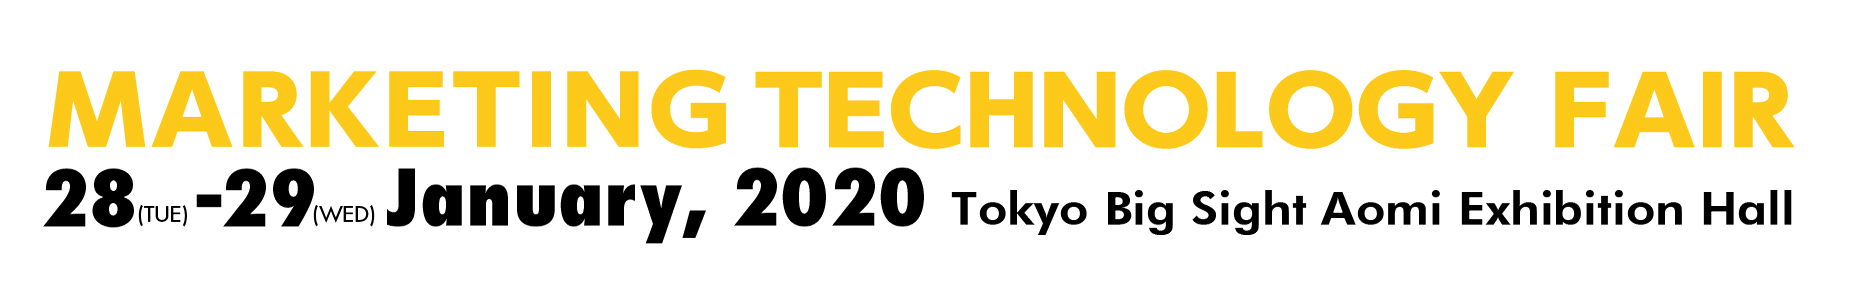 Marketing Technology Fair Tokyo 2020 28-29 January 2020 Tokyo Big Sight Aomi Exhibition Hall